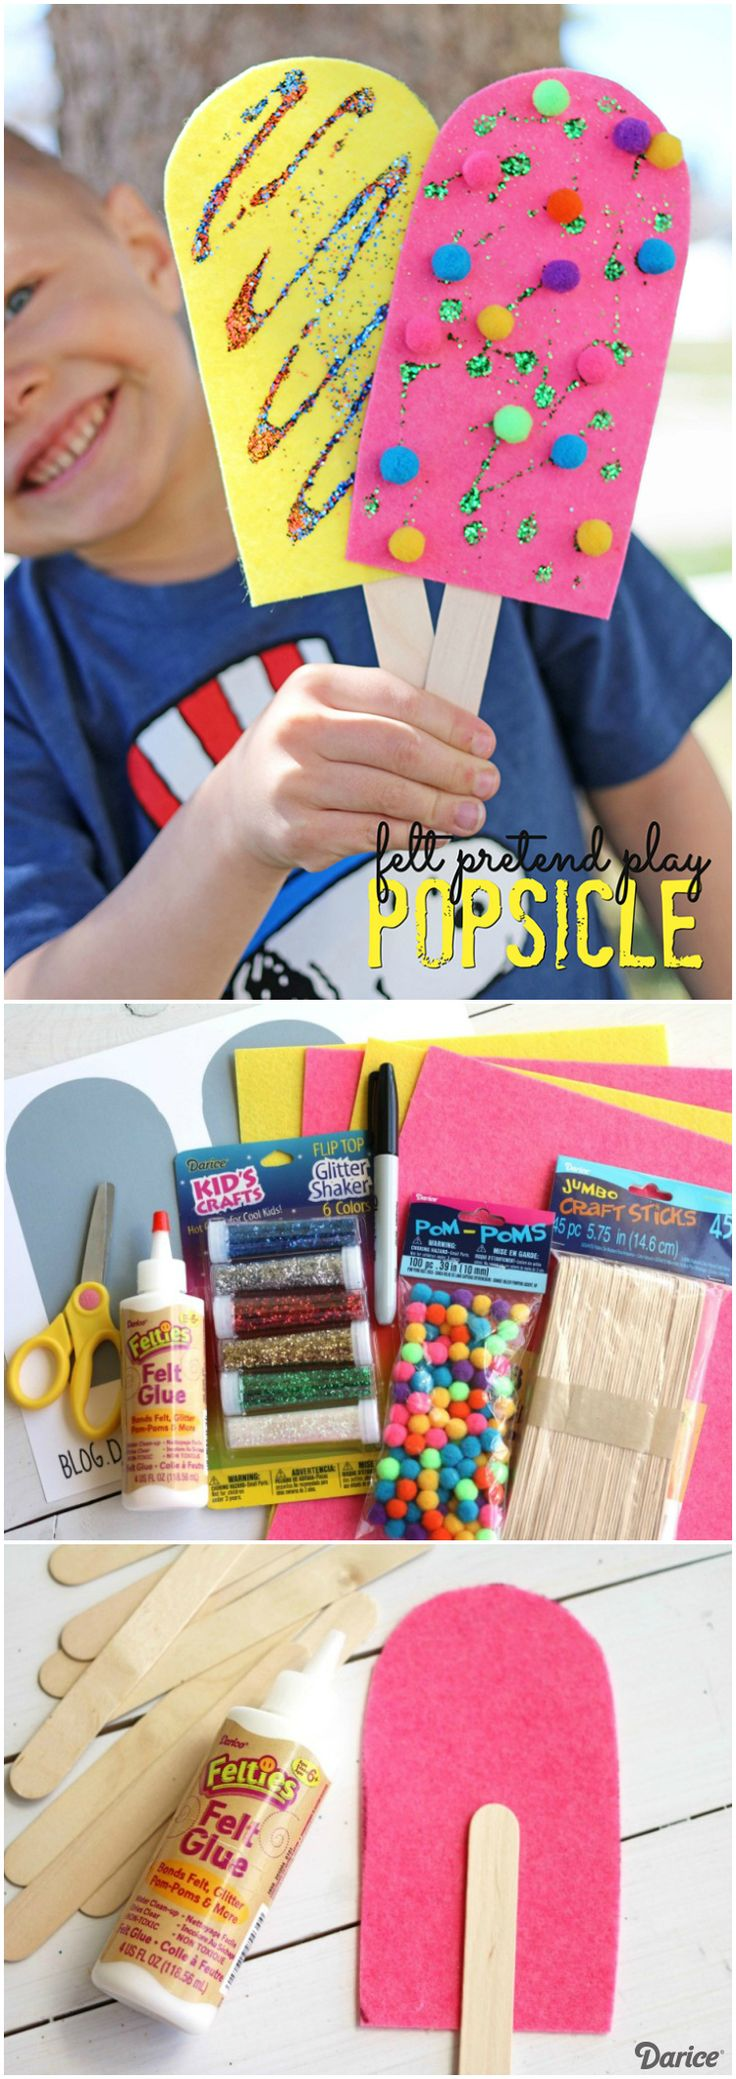 This pretend play felt popsicle craft is a fun summer themed craft idea that is not only calorie free and fun for all ages but it's also super simple!